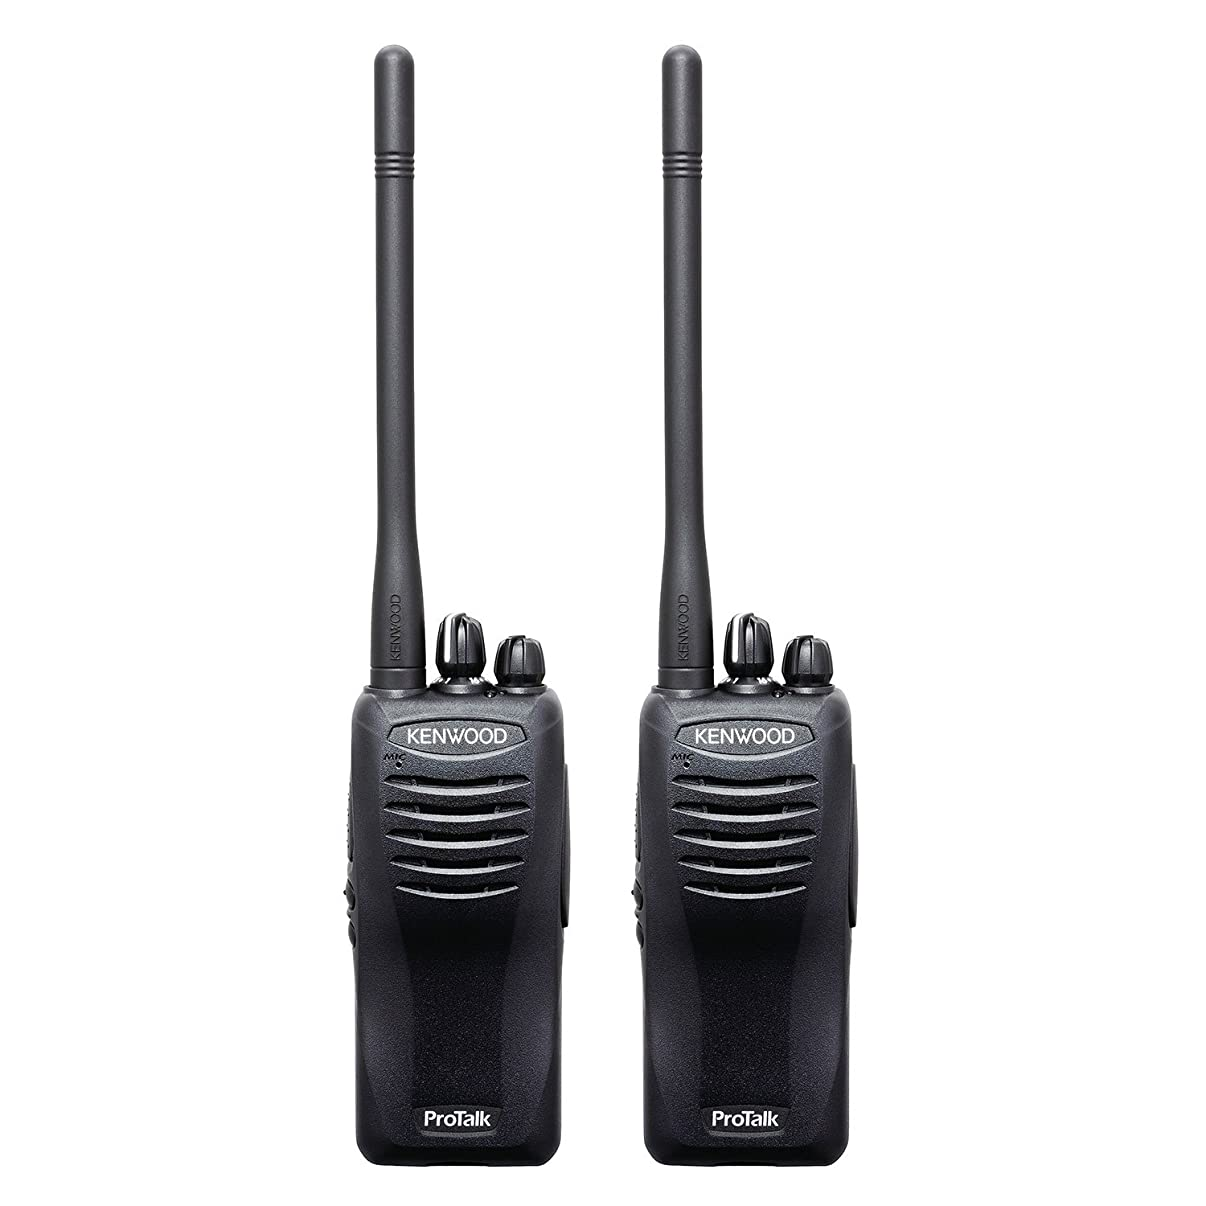 Kenwood ProTalk TK-2400V16P Compact VHF FM Portable 2-Way Radio (Pack of 2), 16 Total Channels, 2.0 Watt Output Power, 220000 Sq. Ft. / 13 Floor / 6 Mile Range